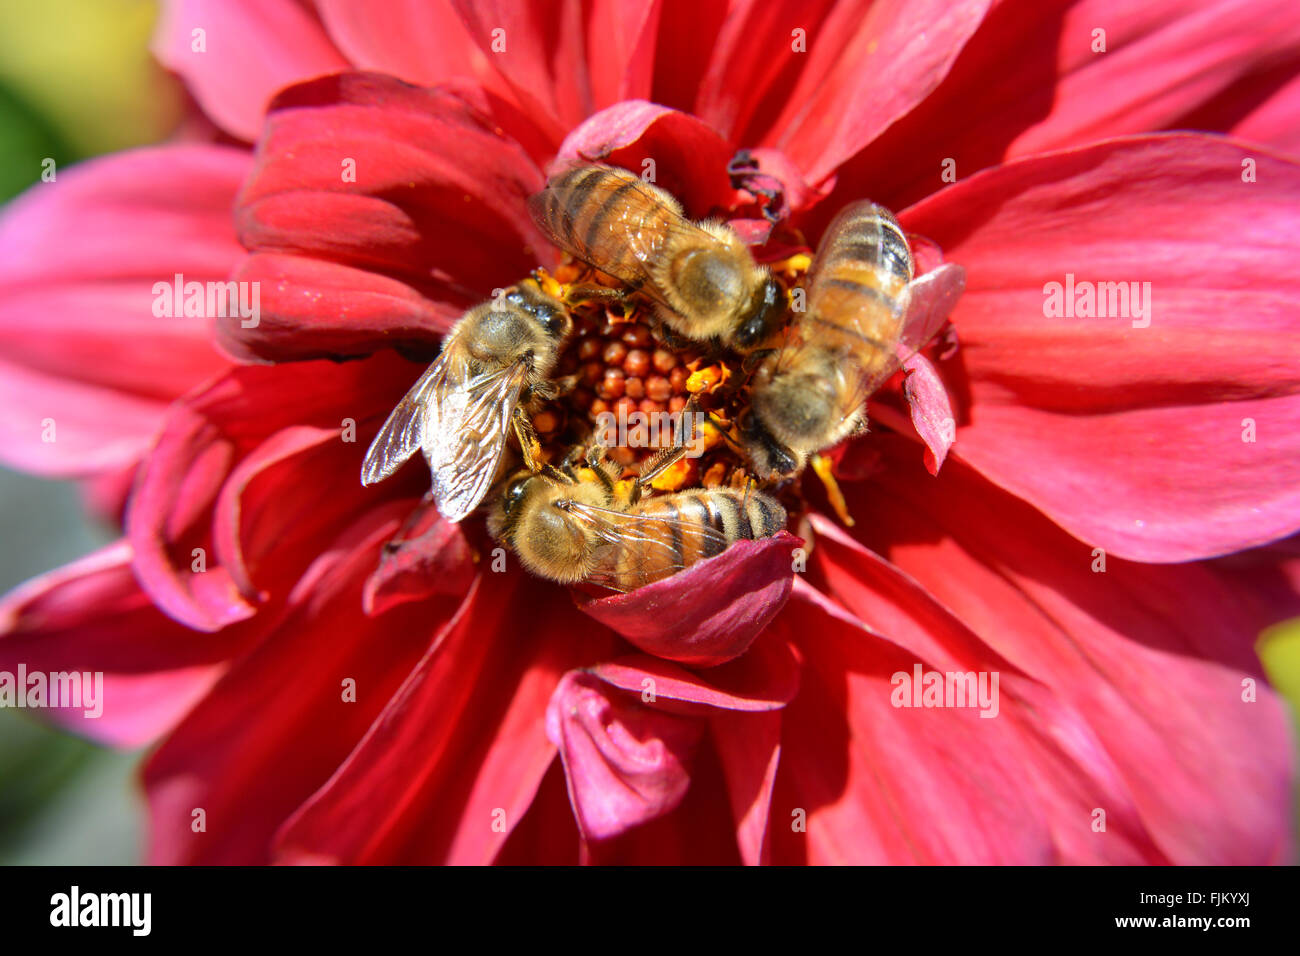 Four Honey Bees Swarm Pollinate a Red Flower - Stock Image